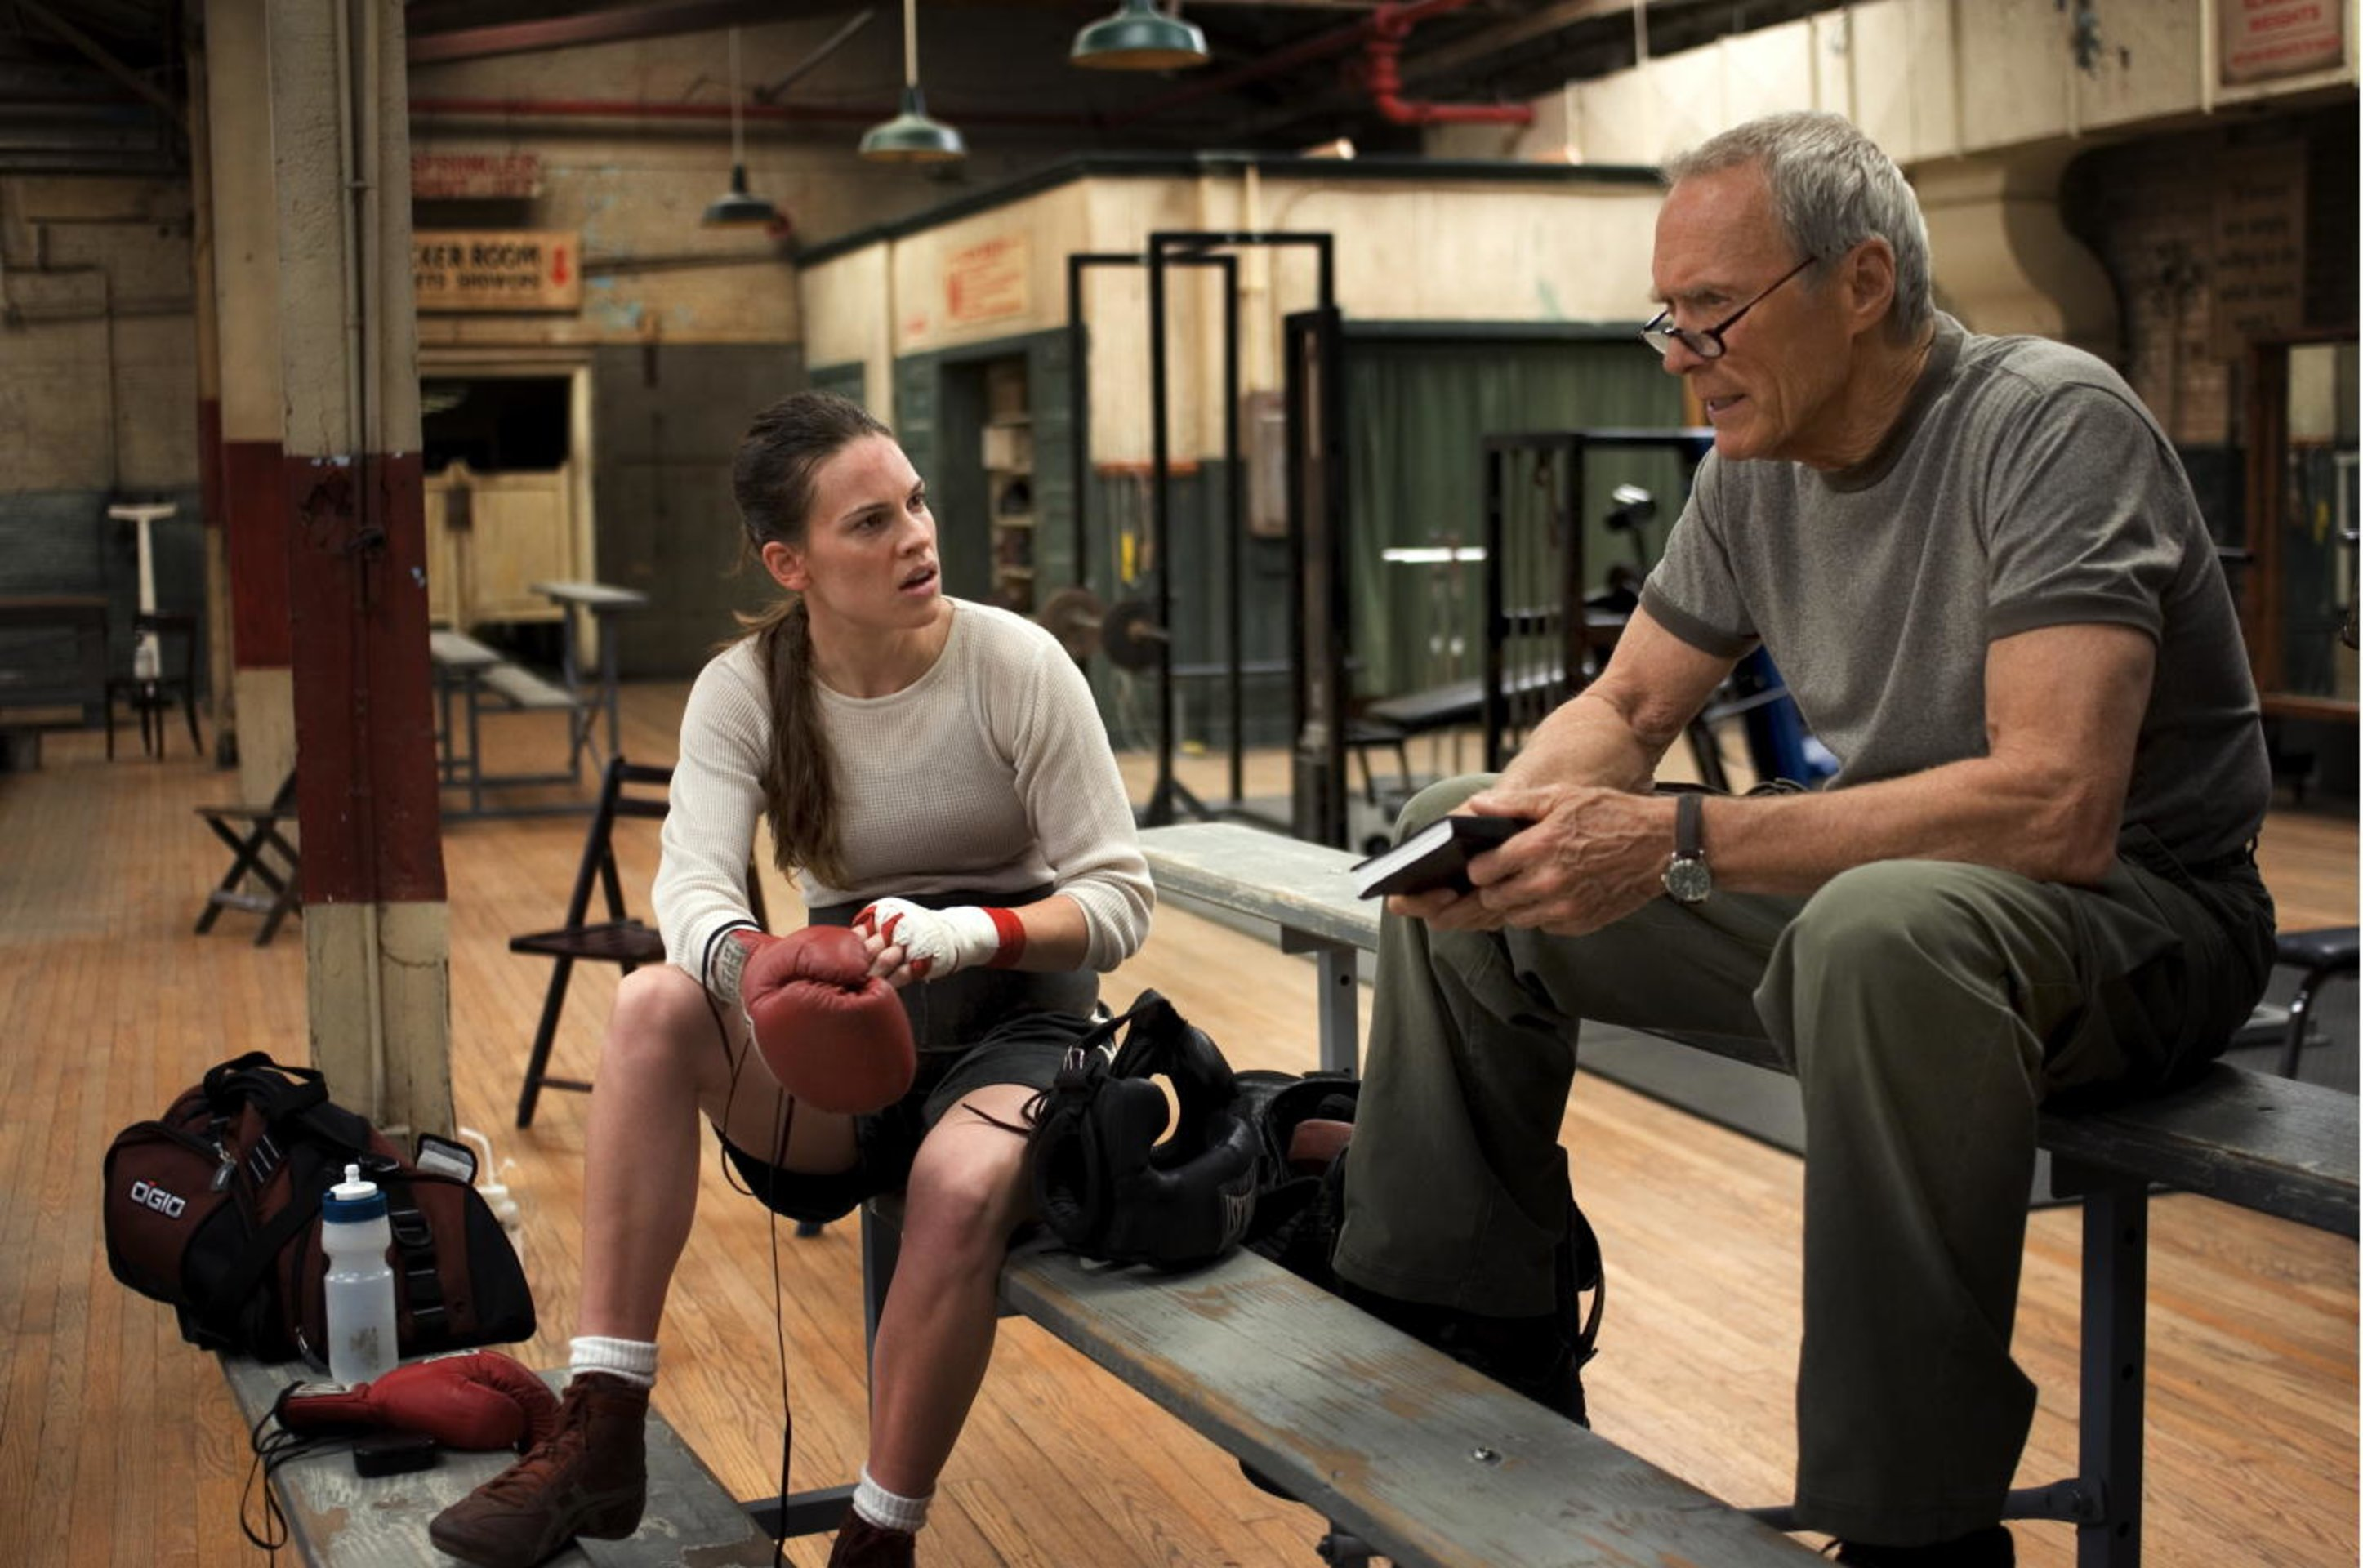 a review of the film million dollar baby by clint eastwood Directed by clint eastwood, million dollar baby is the 2004 academy award winner for best picture that tells the story of margaret fitzgerald (hilary swank) as she trains as a boxer under the .